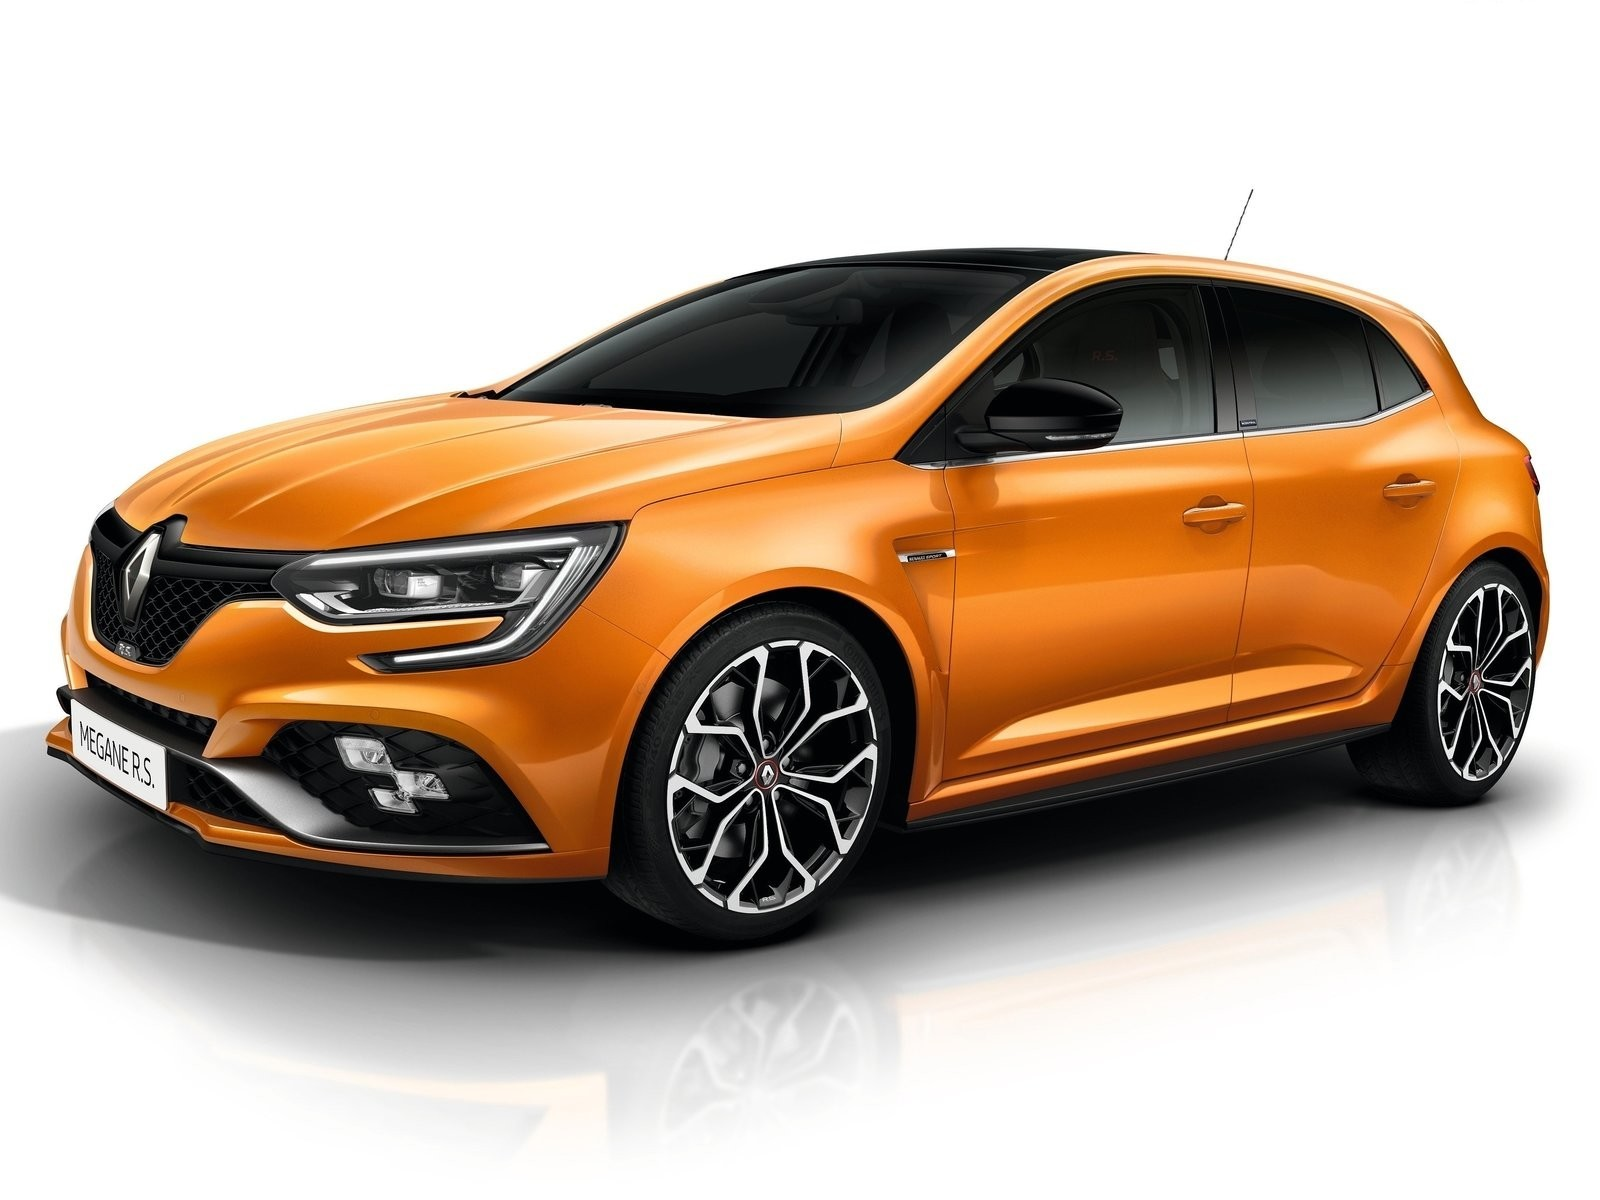 renault megane rs 2018  moteur essence turbo 1 8 litre de